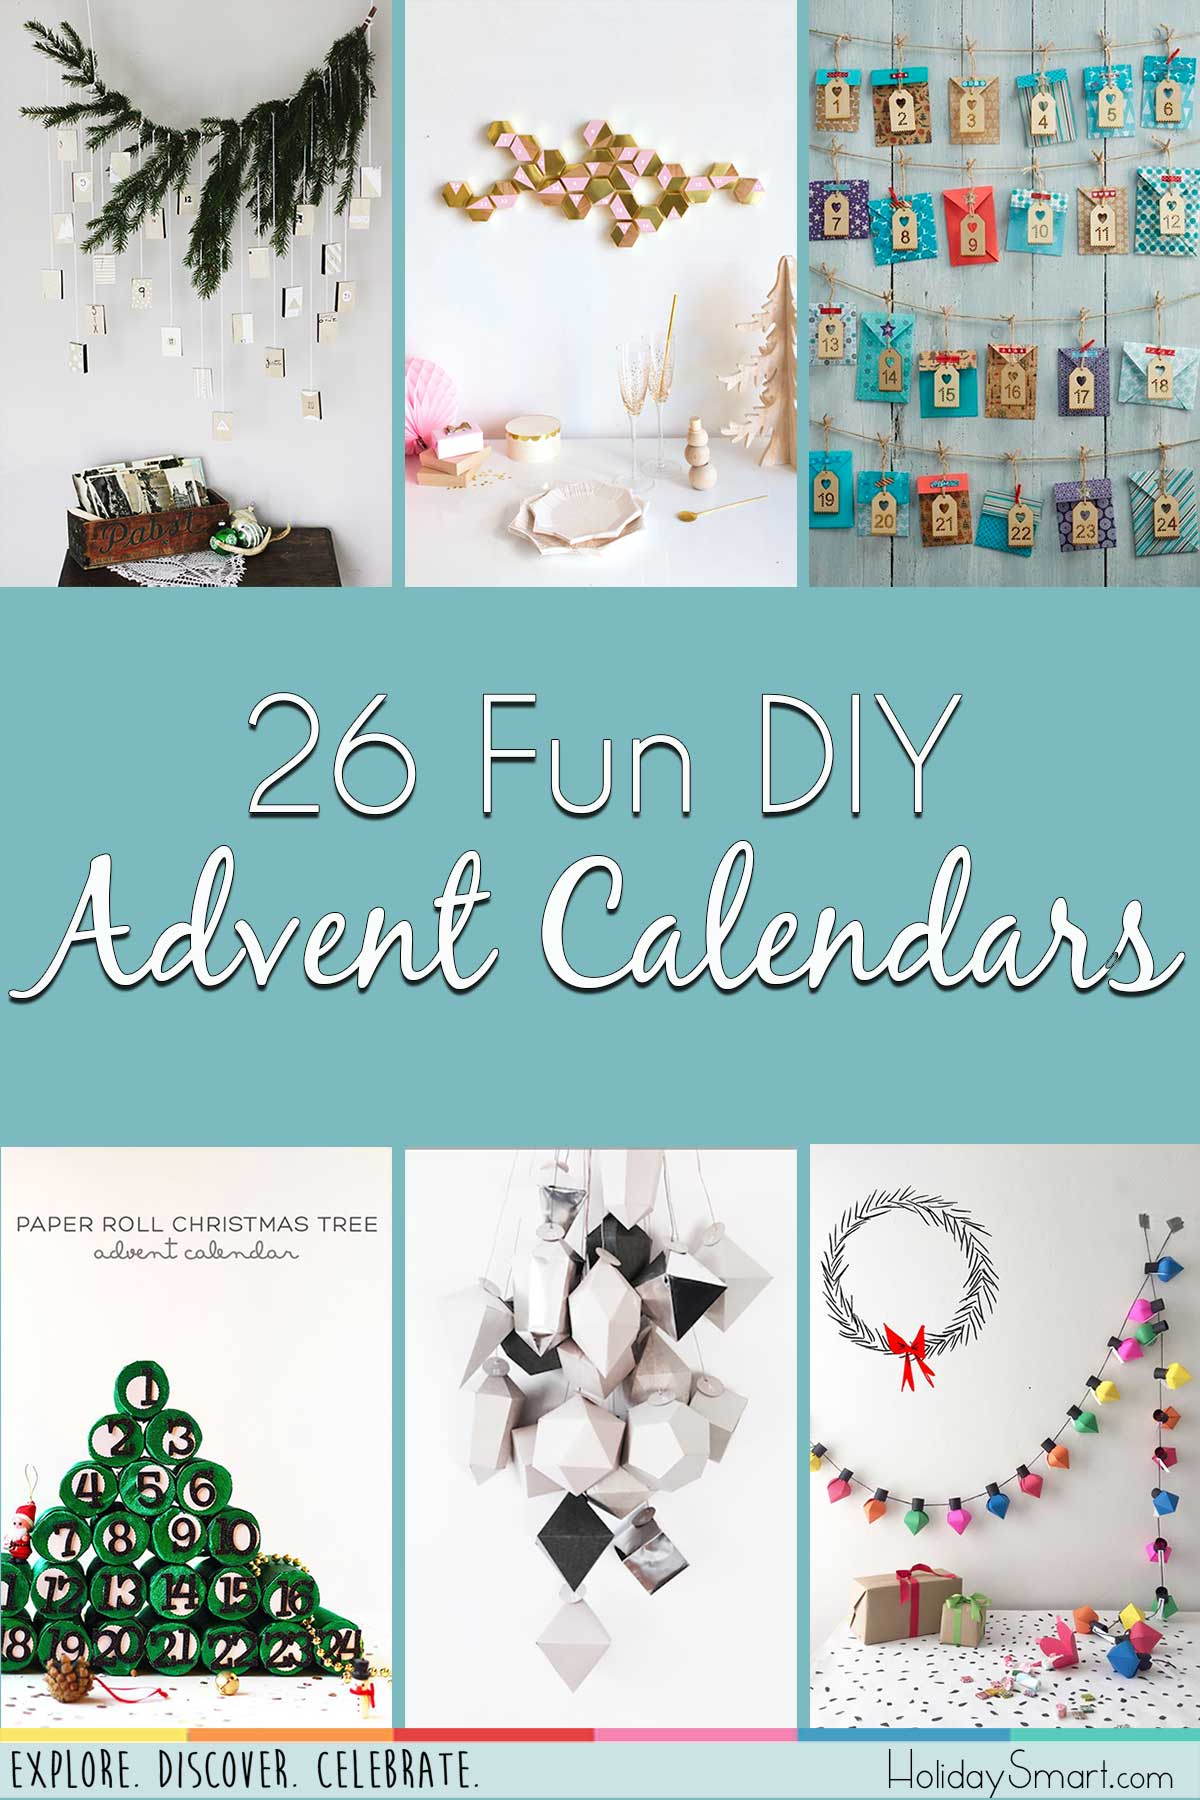 26 Fun DIY Advent Calendars